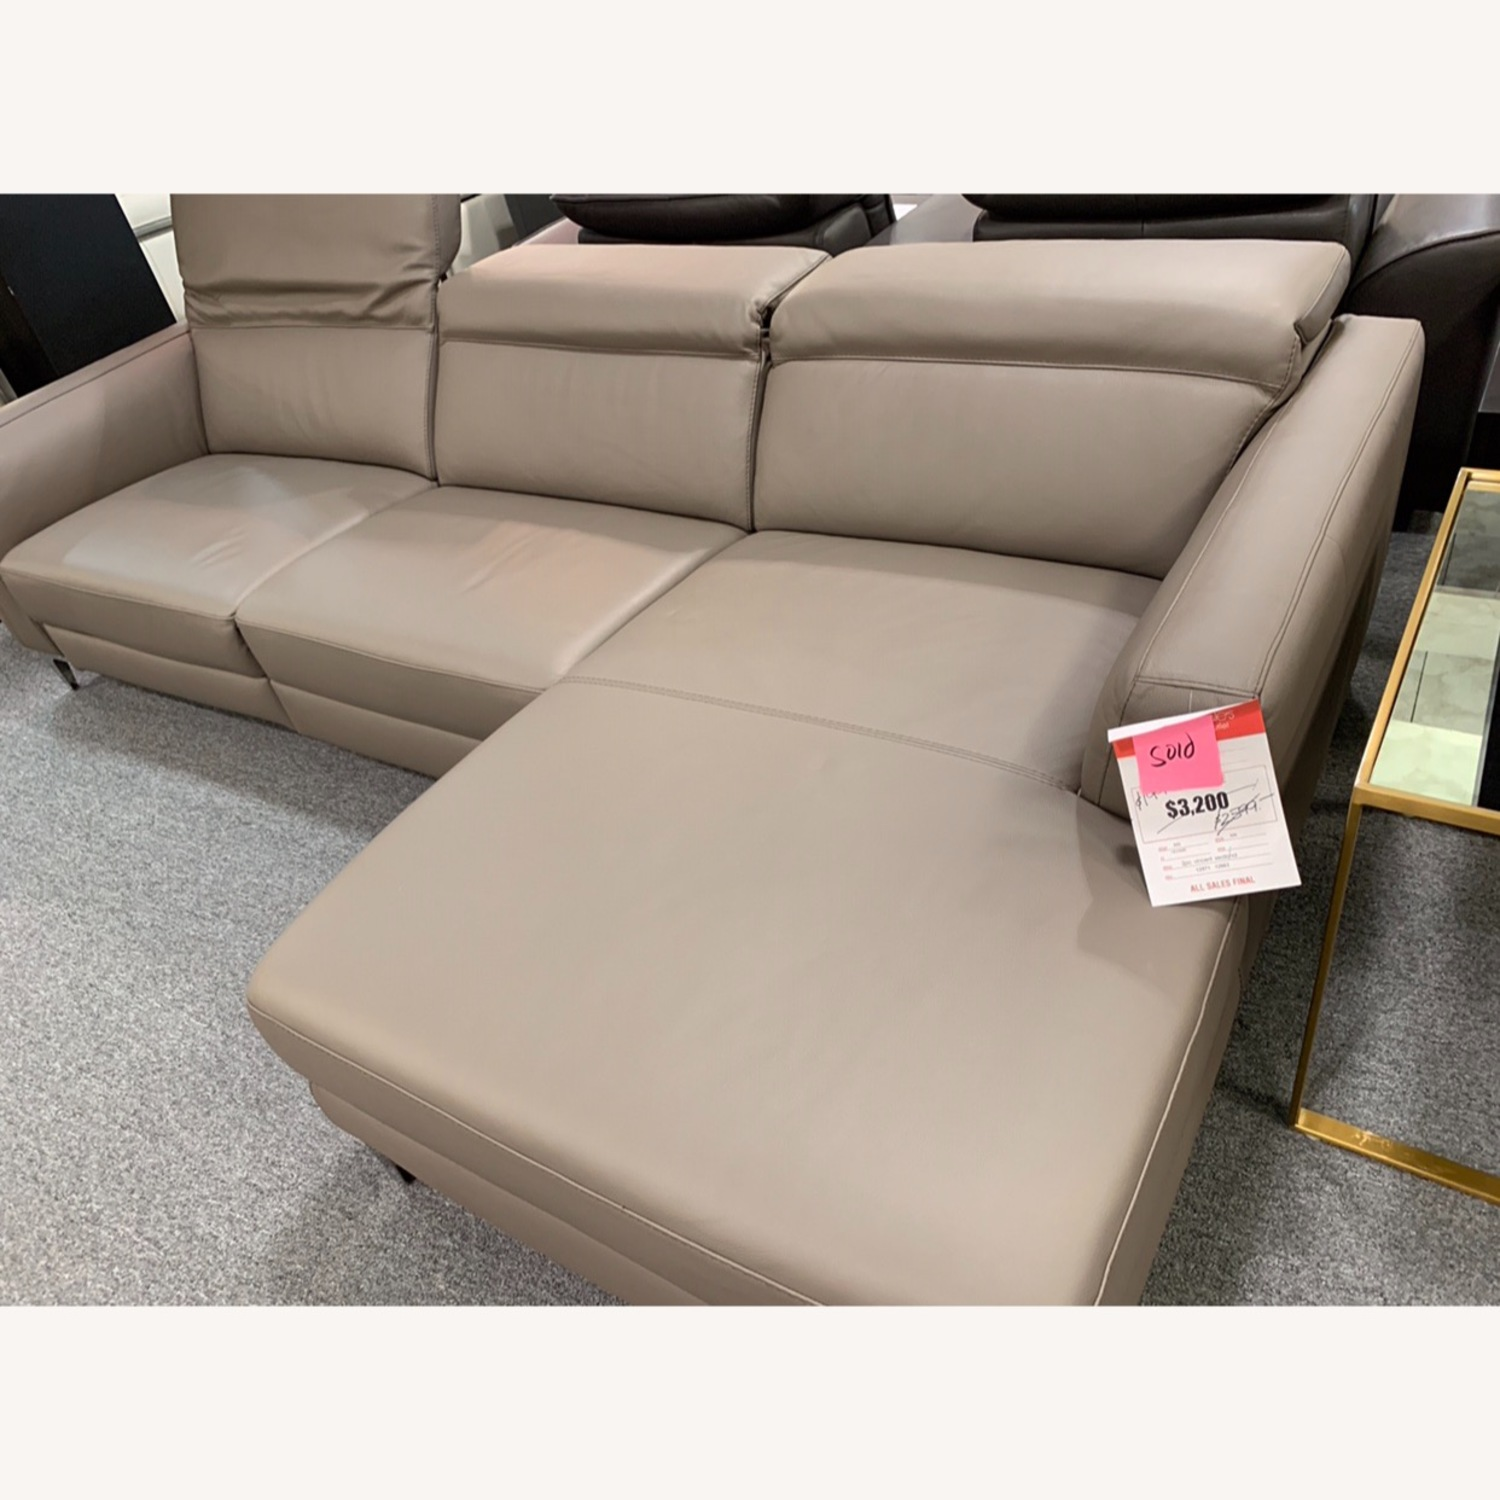 Nicoletti Vincent Leather Sectional Sofa - image-3